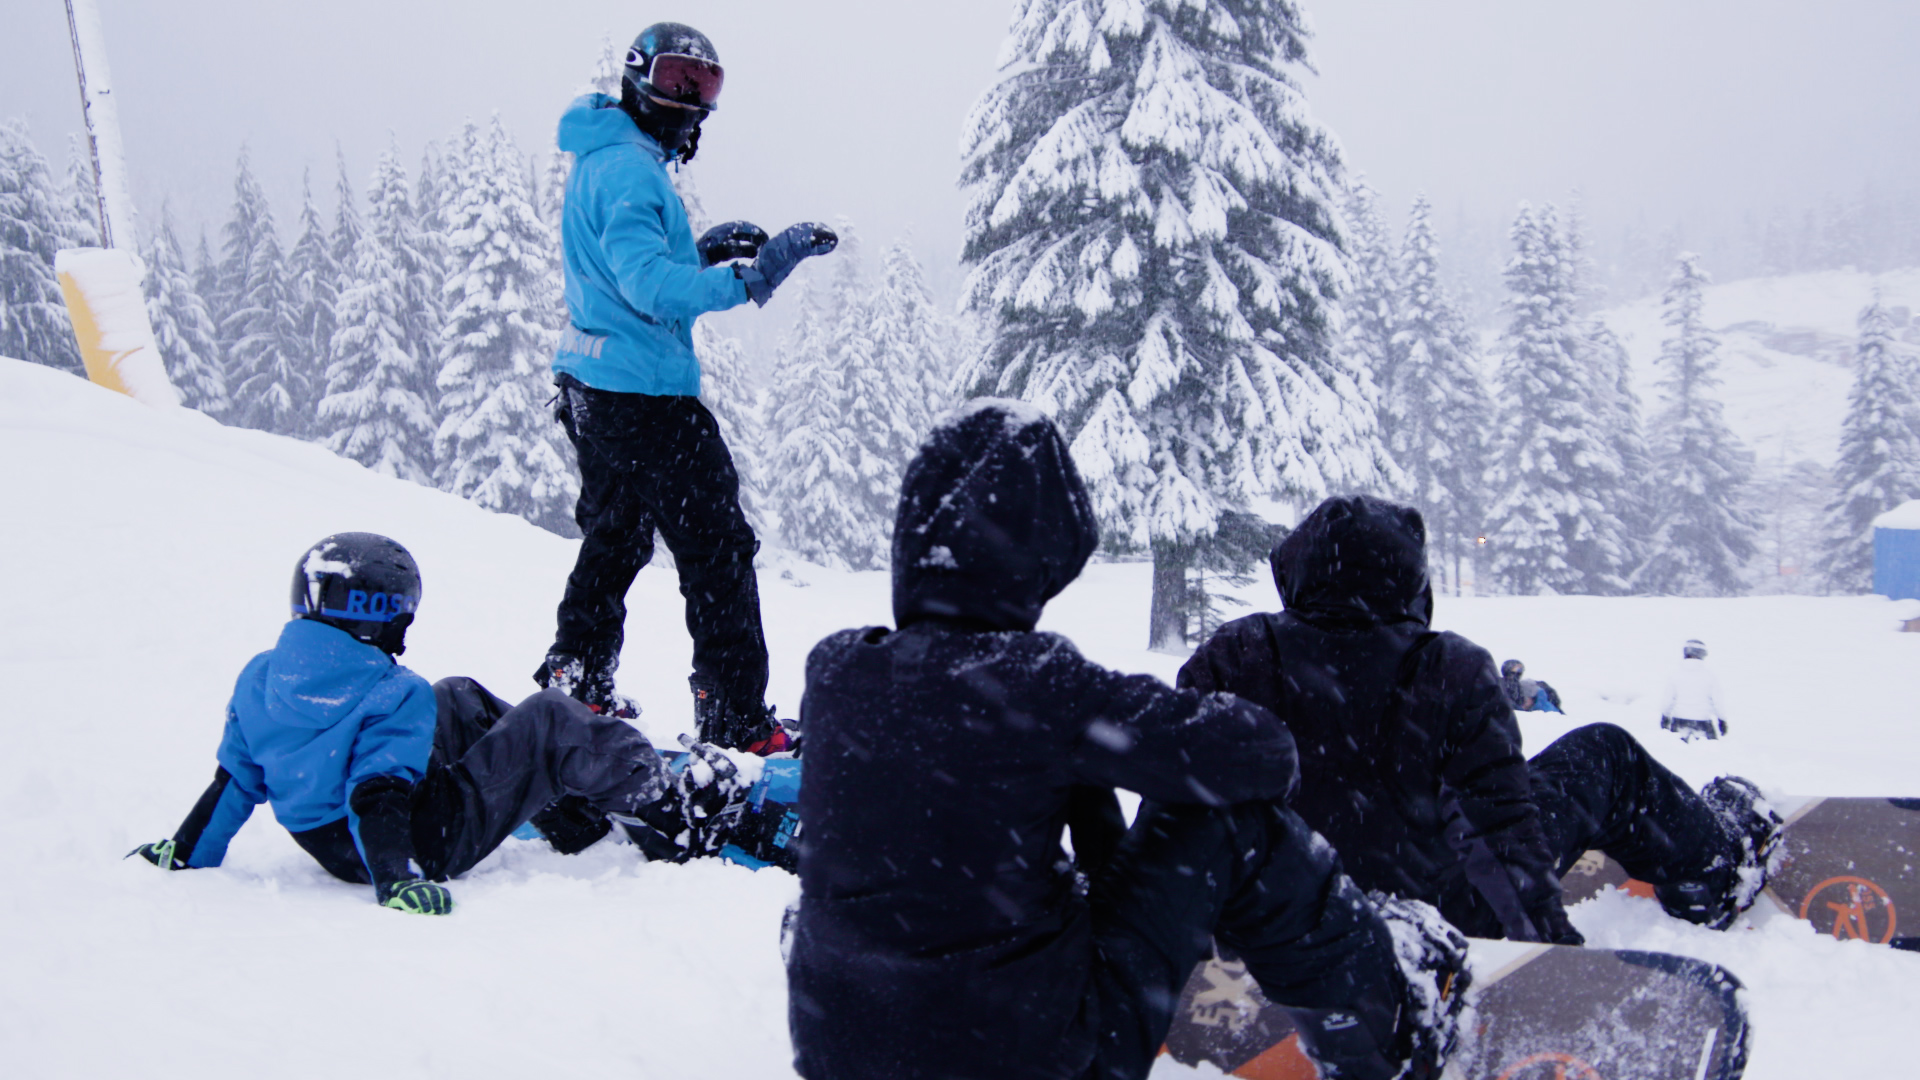 Snowboard instruction at Sasquatch Mountain Resort